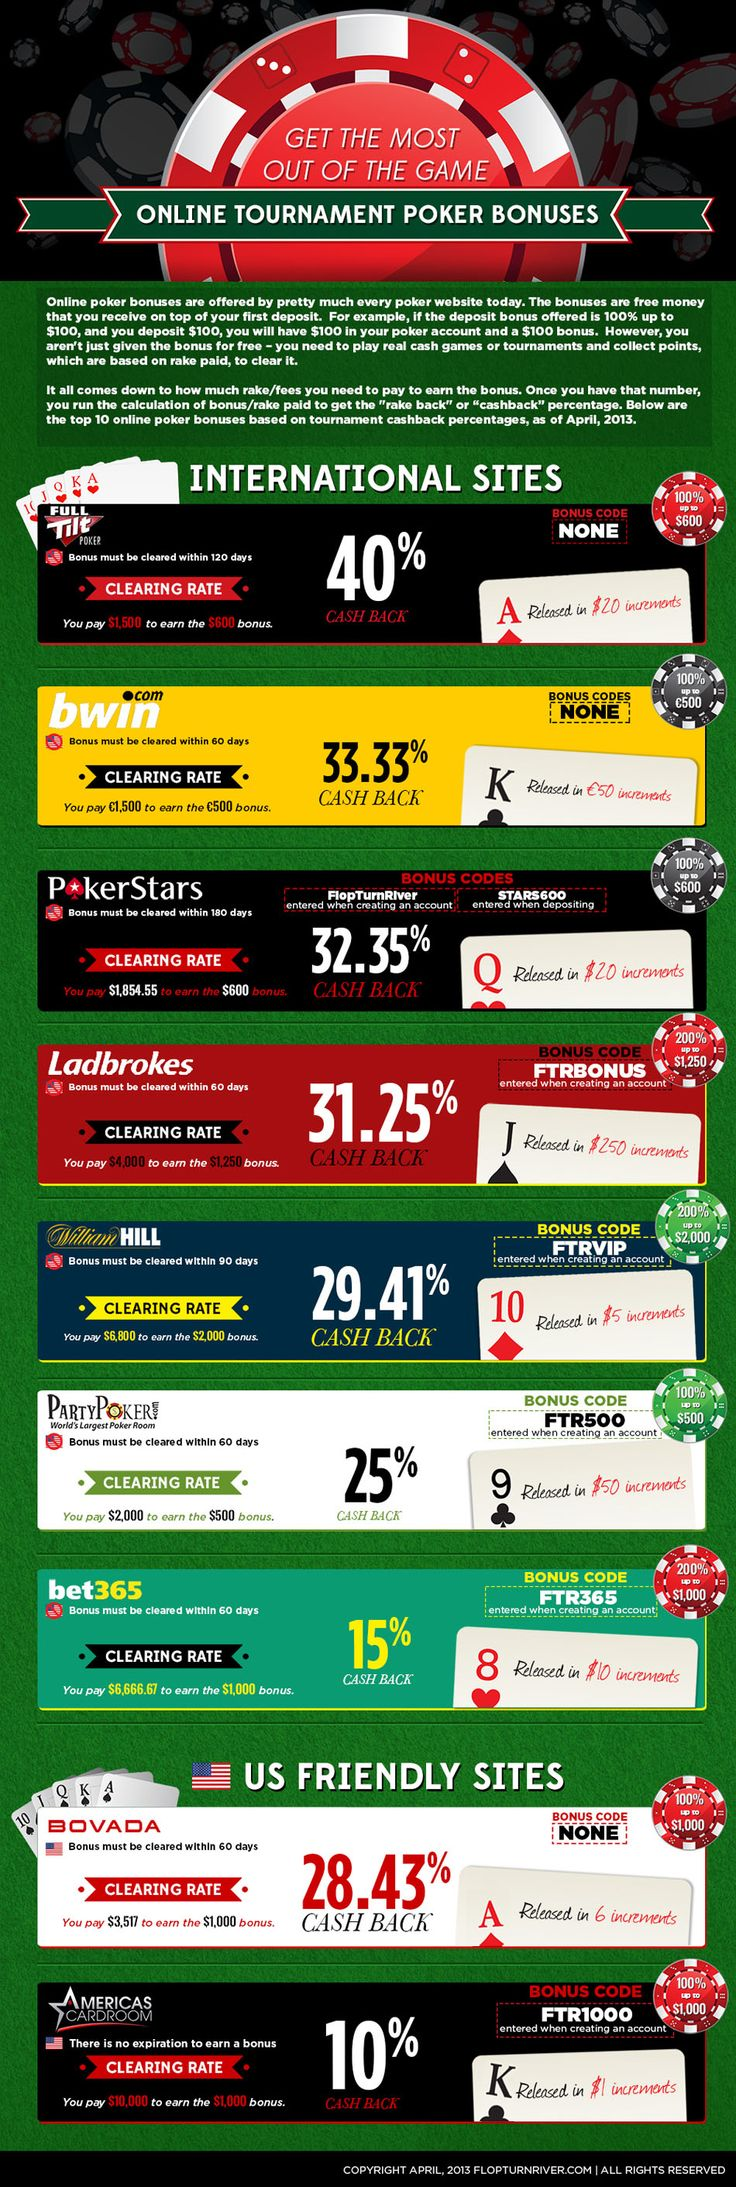 Shows all of the poker bonuses and details on how to unlock them from all of the top online poker sites.